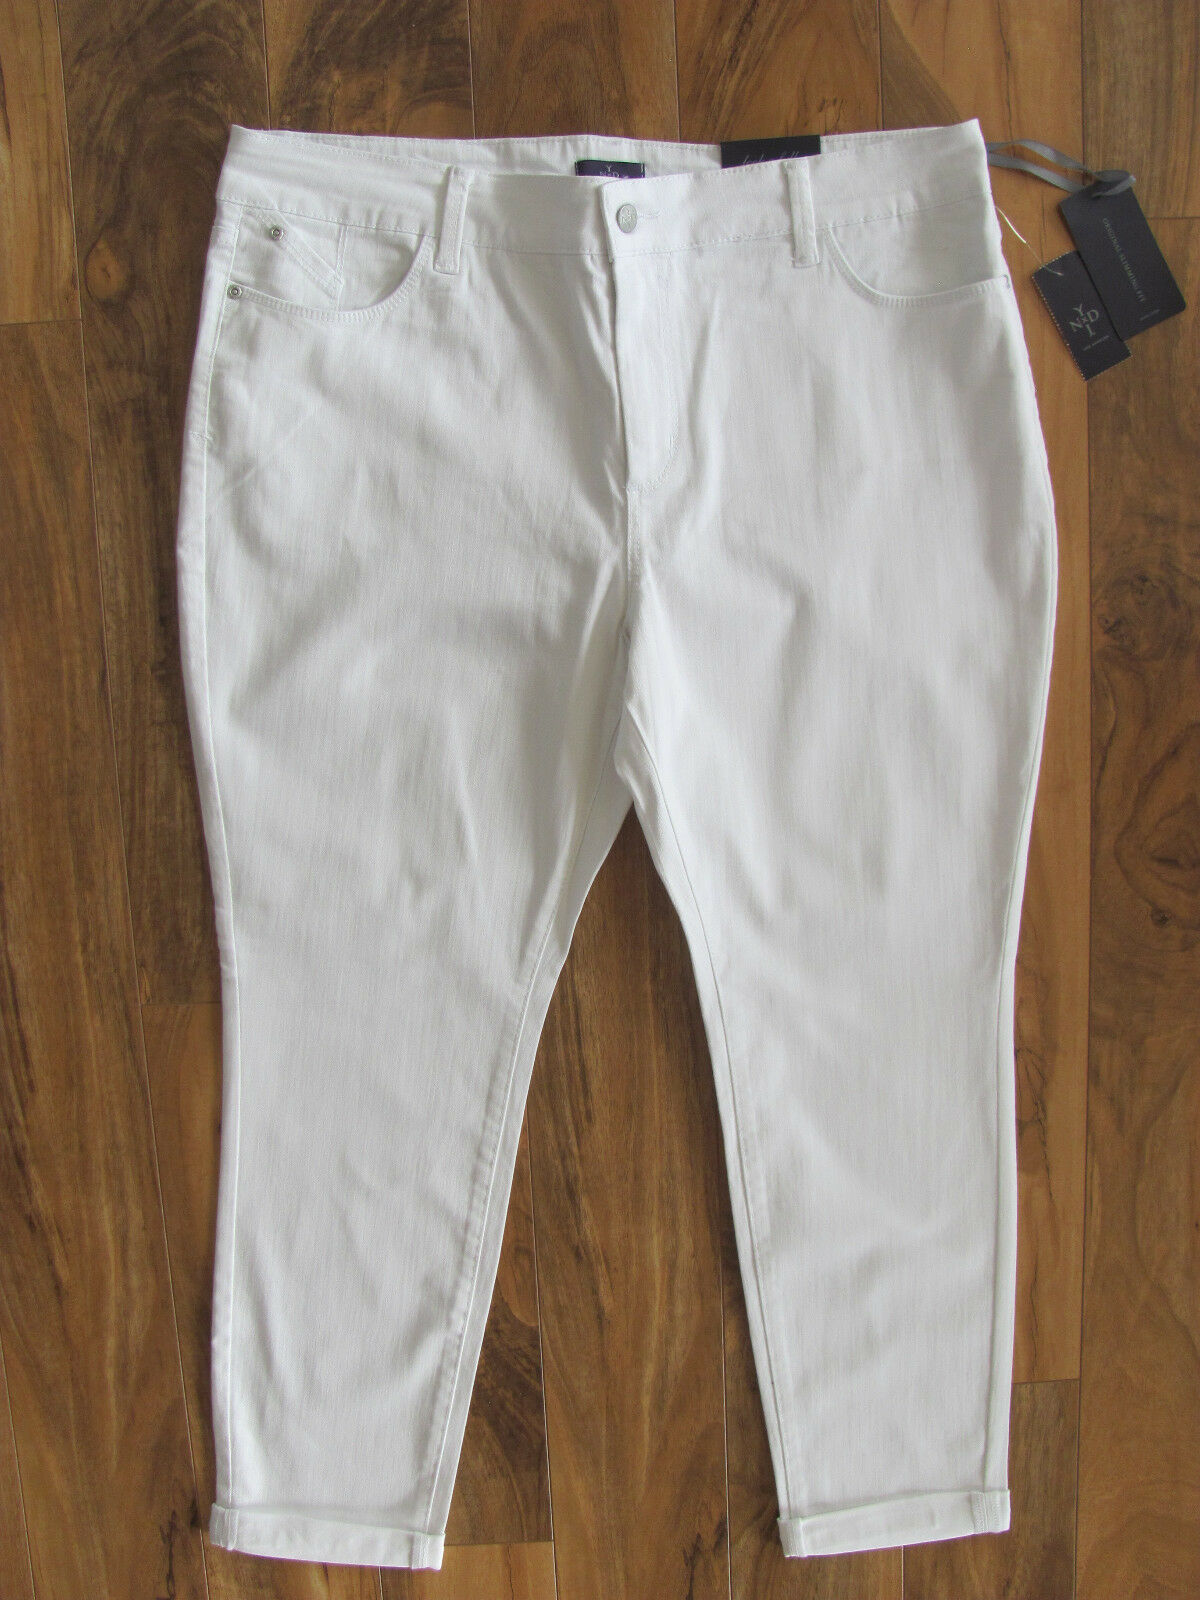 NYDJ Not Your Daughter's Jeans-Anabelle Skinny Boyfriend- White- Size 18P-NWT